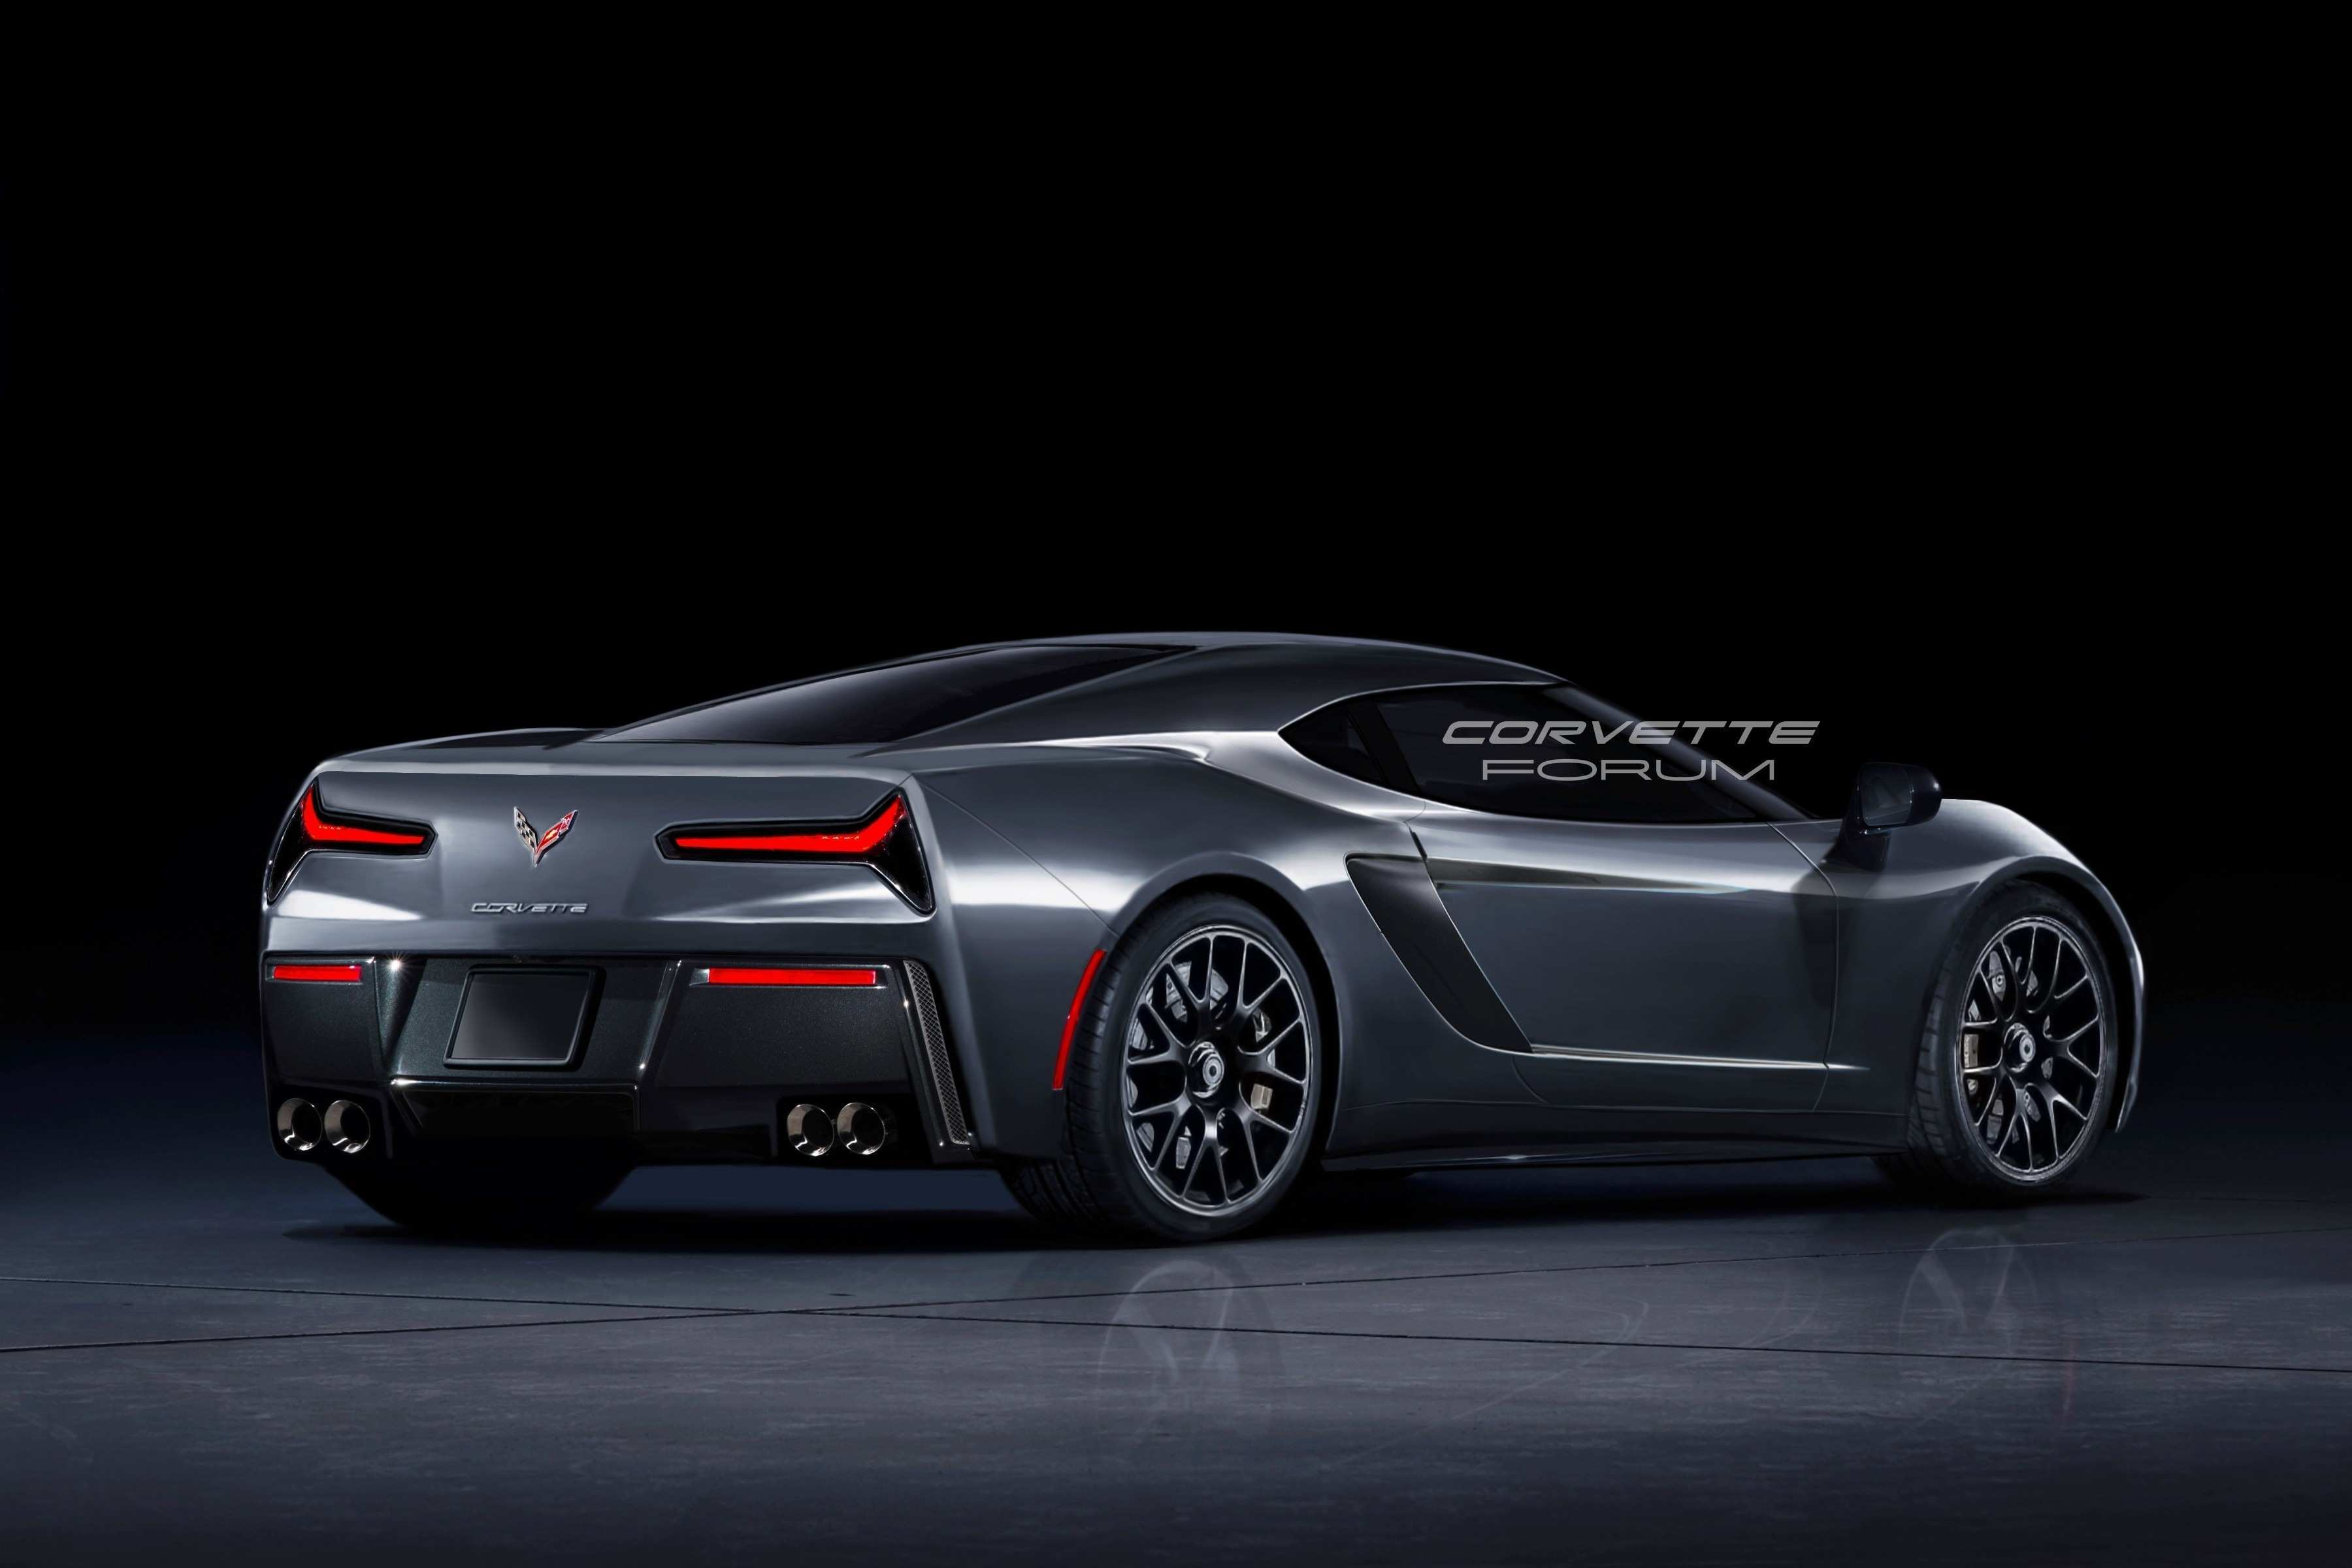 27 The Best 2019 Chevy Corvette Zora Zr1 Review And Release Date